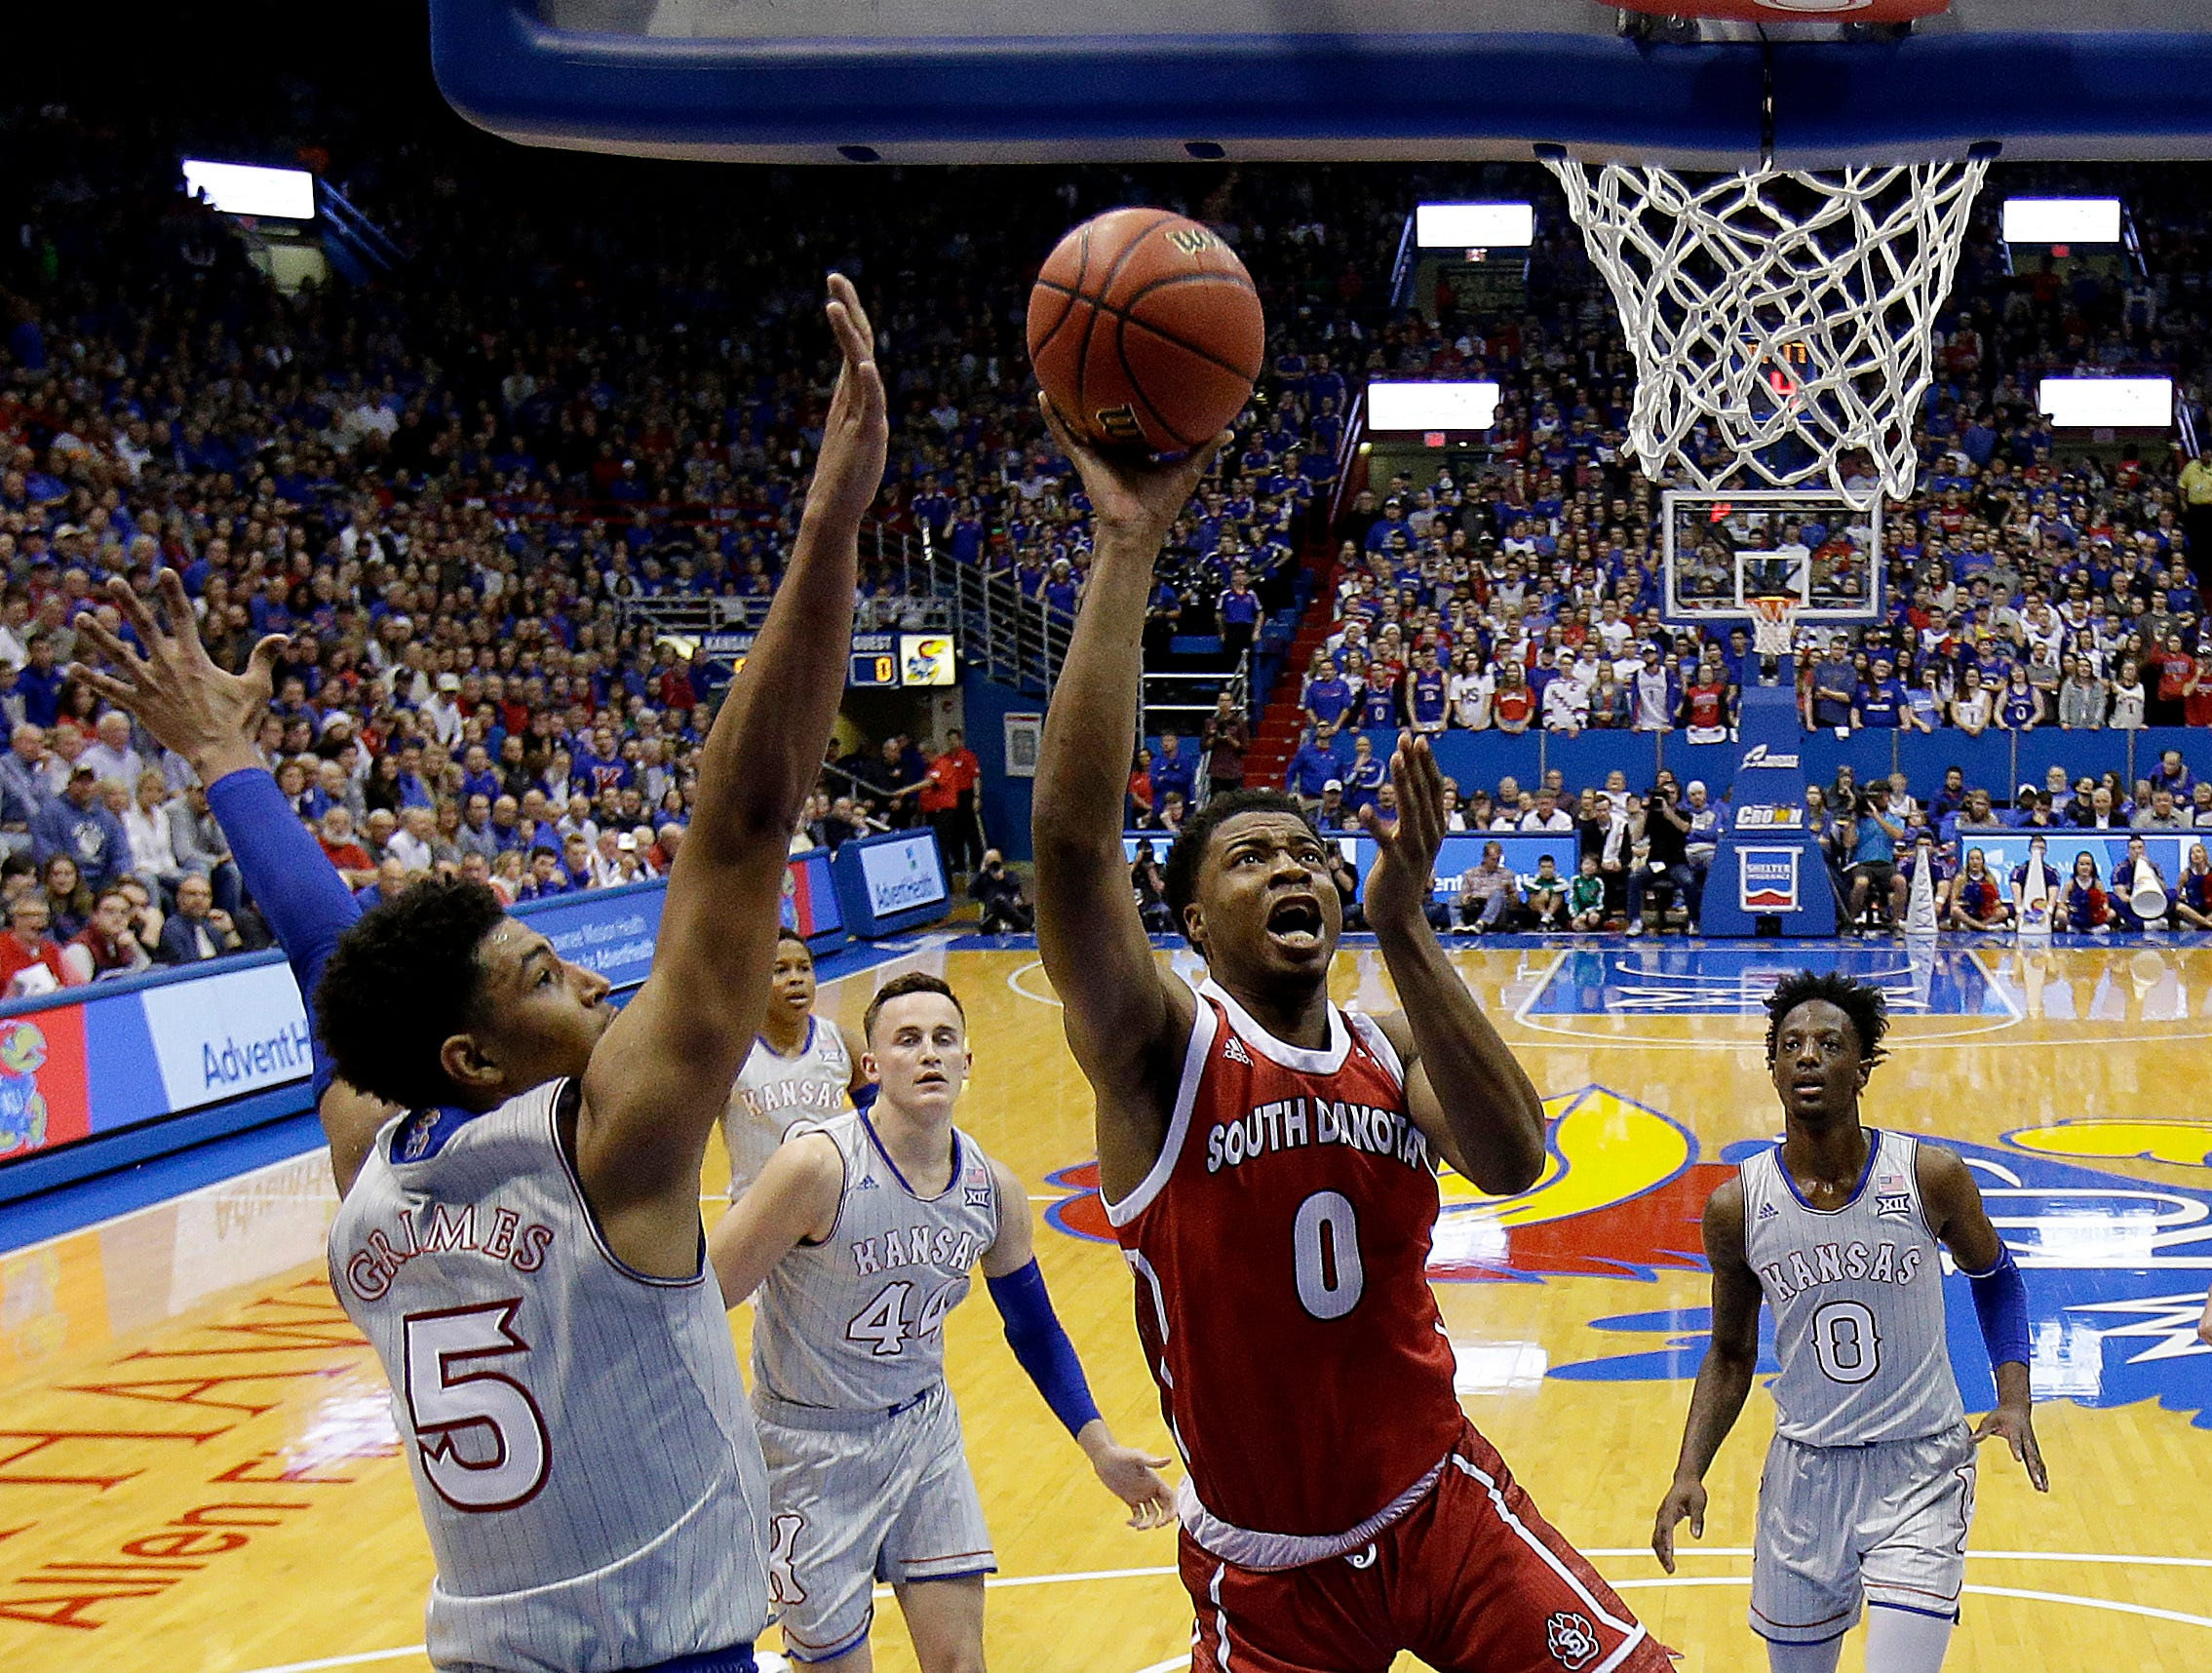 South Dakota's Stanley Umude (0) puts up a shot under pressure from Kansas' Quentin Grimes (5) during the first half of an NCAA college basketball game Tuesday, Dec. 18, 2018, in Lawrence, Kan. (AP Photo/Charlie Riedel)